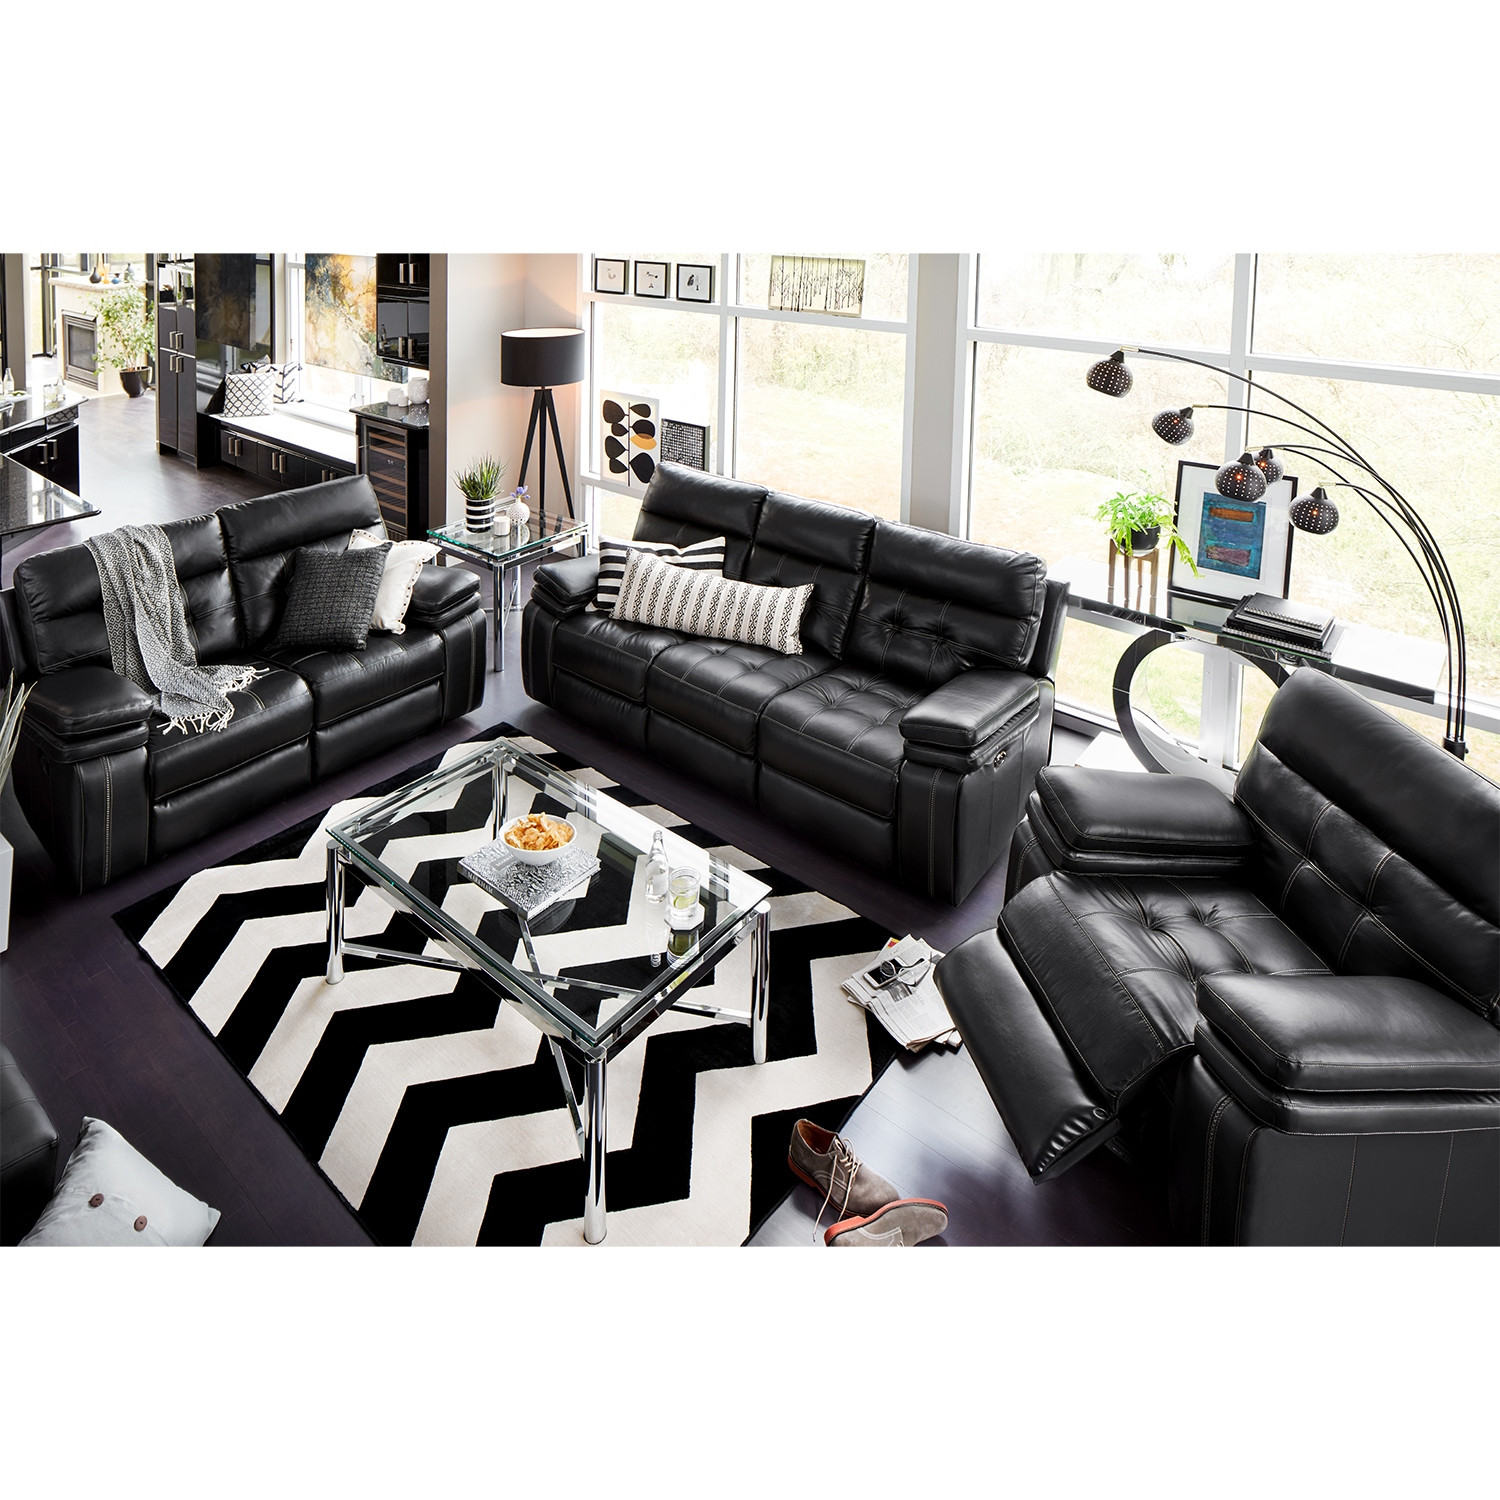 Living Room Furniture   Brisco Power Reclining Sofa, Reclining Loveseat And  Glider Recliner Set